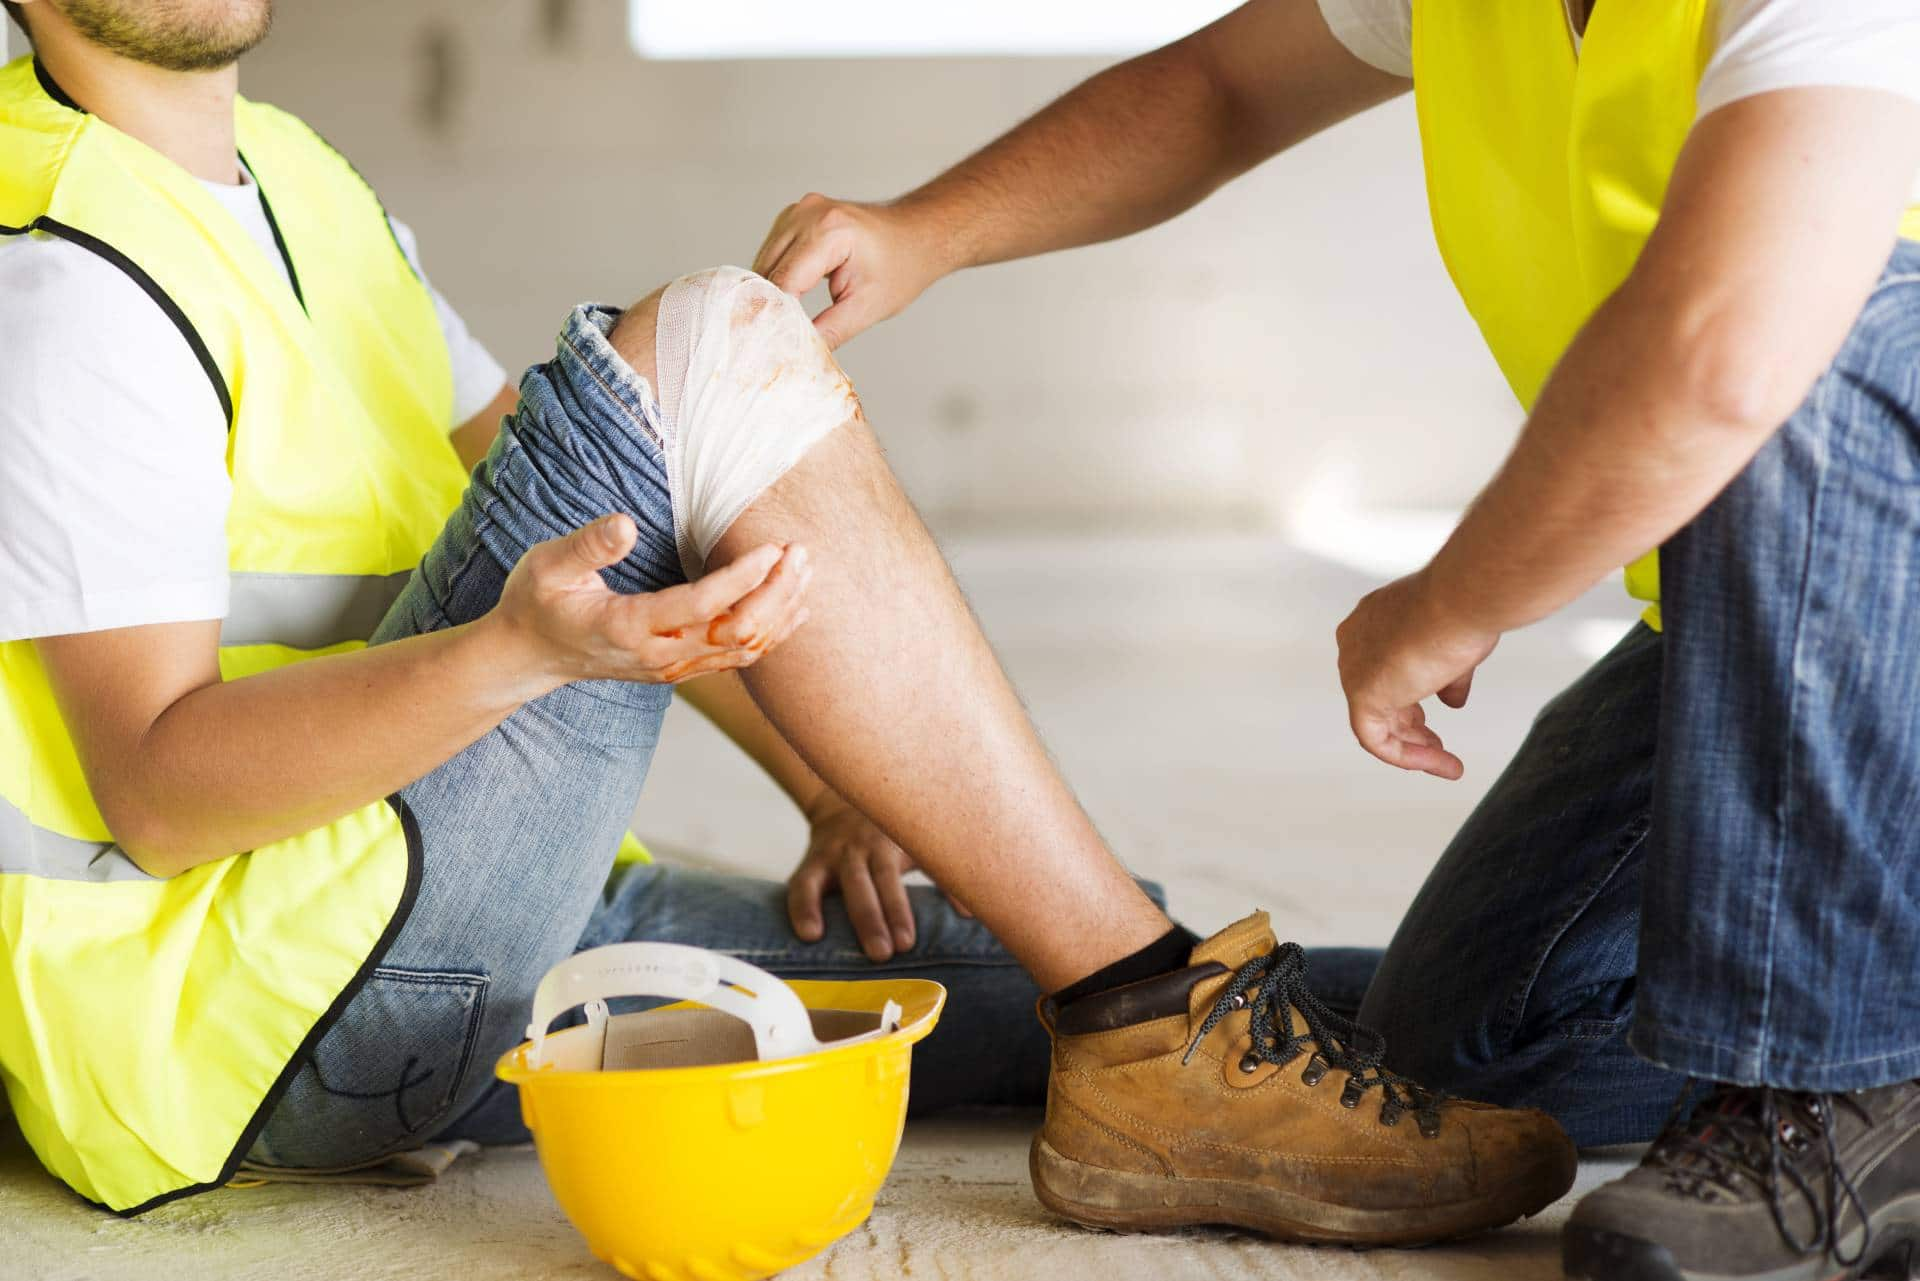 Hurt on the job? Schedule a free consultation with our personal injury lawyers at the Angell Law Firm in Little Five Points, Ga.